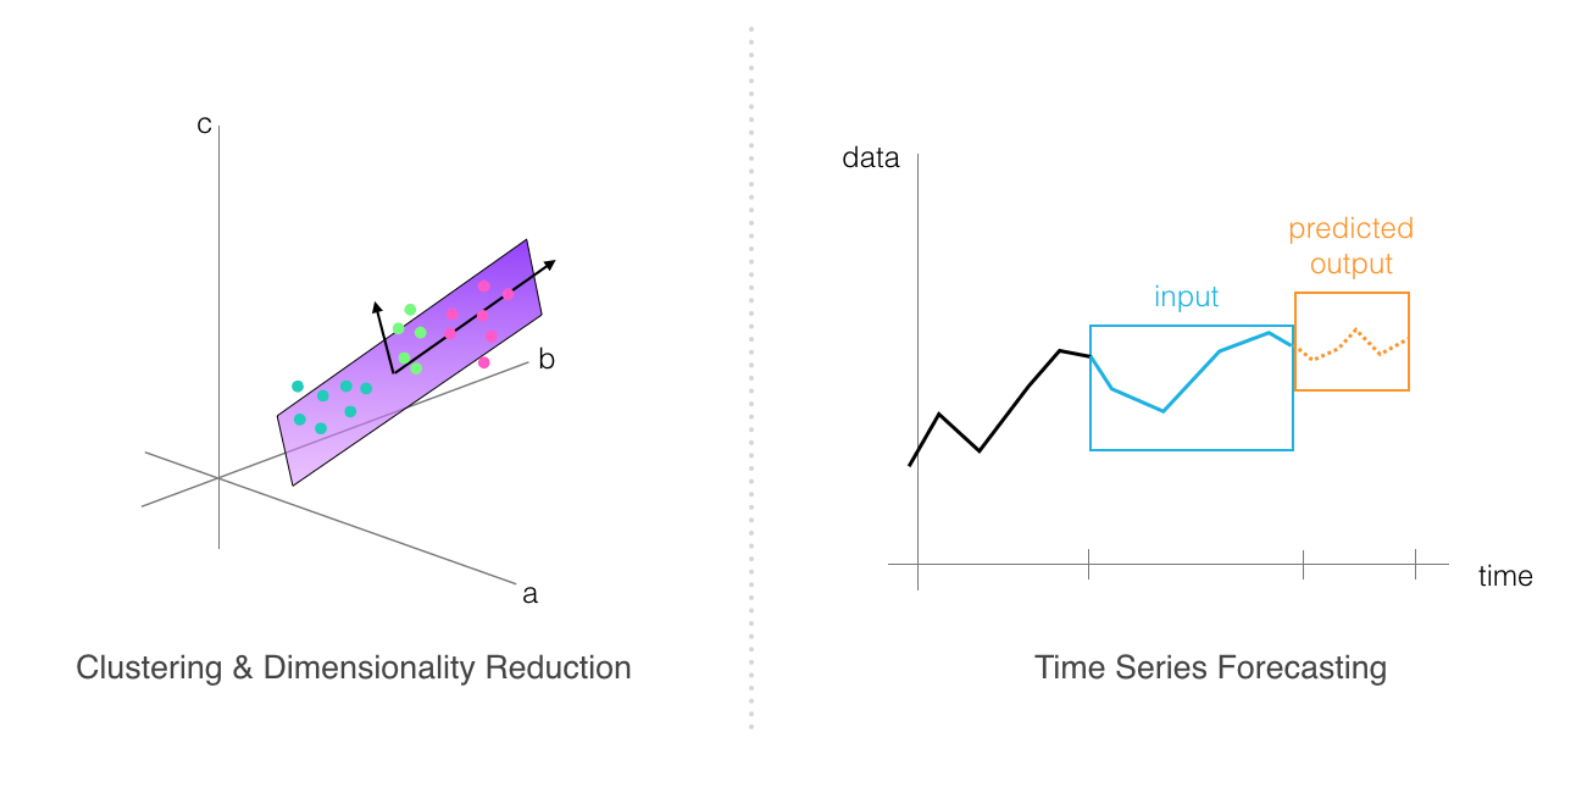 examples of dimensionality reduction and time series forecasting